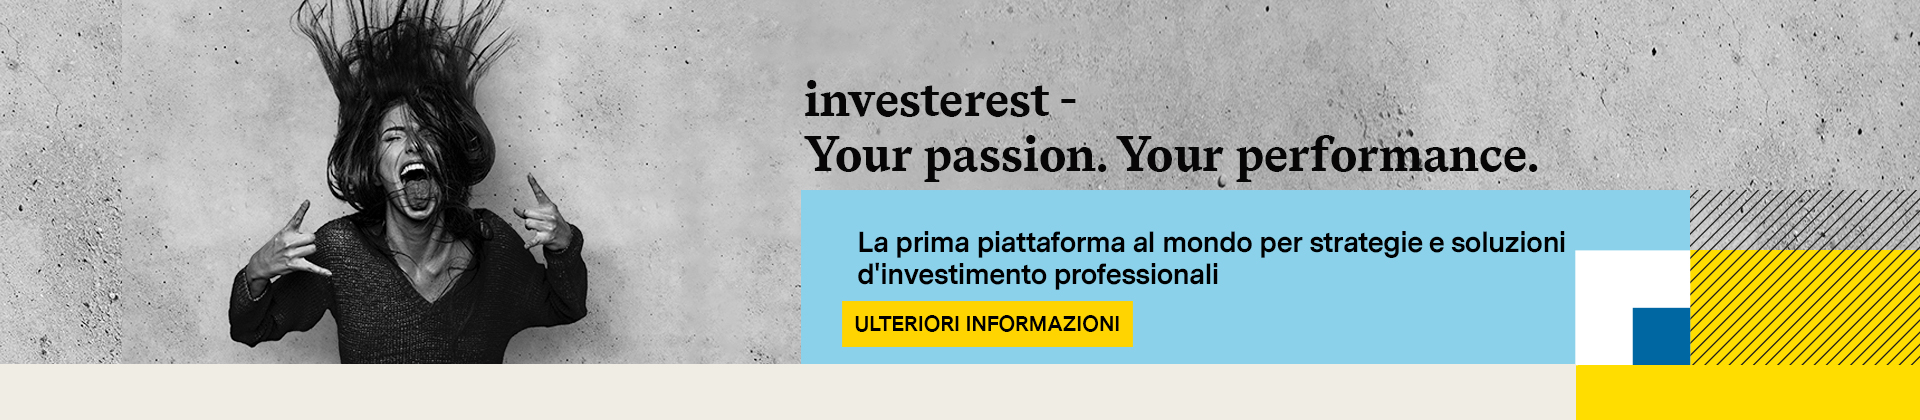 investerest - Your passion. Your performance.